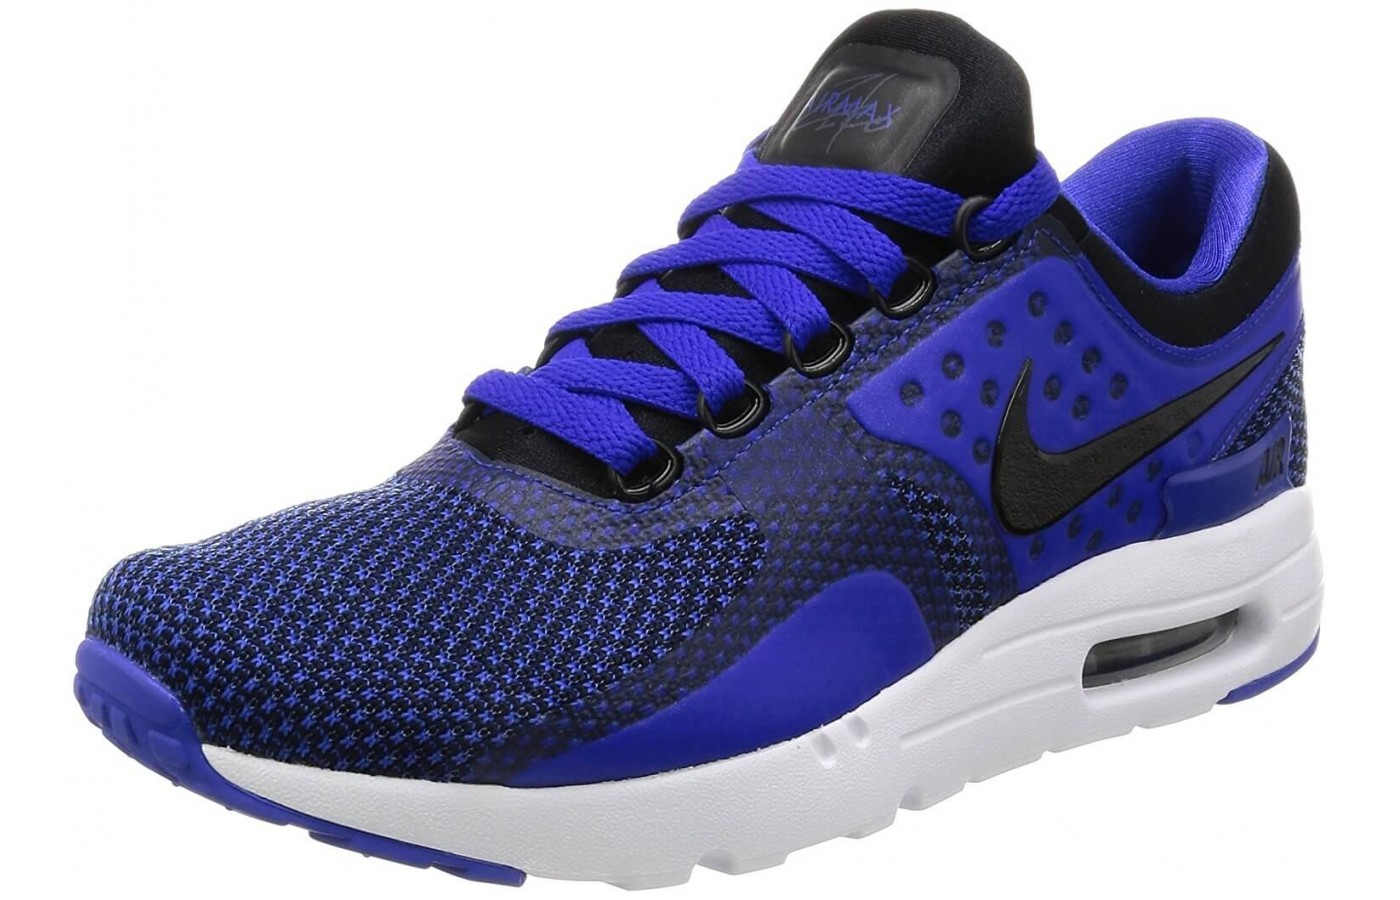 The Nike Air Max Zero Essential features Air cushioning in its heel